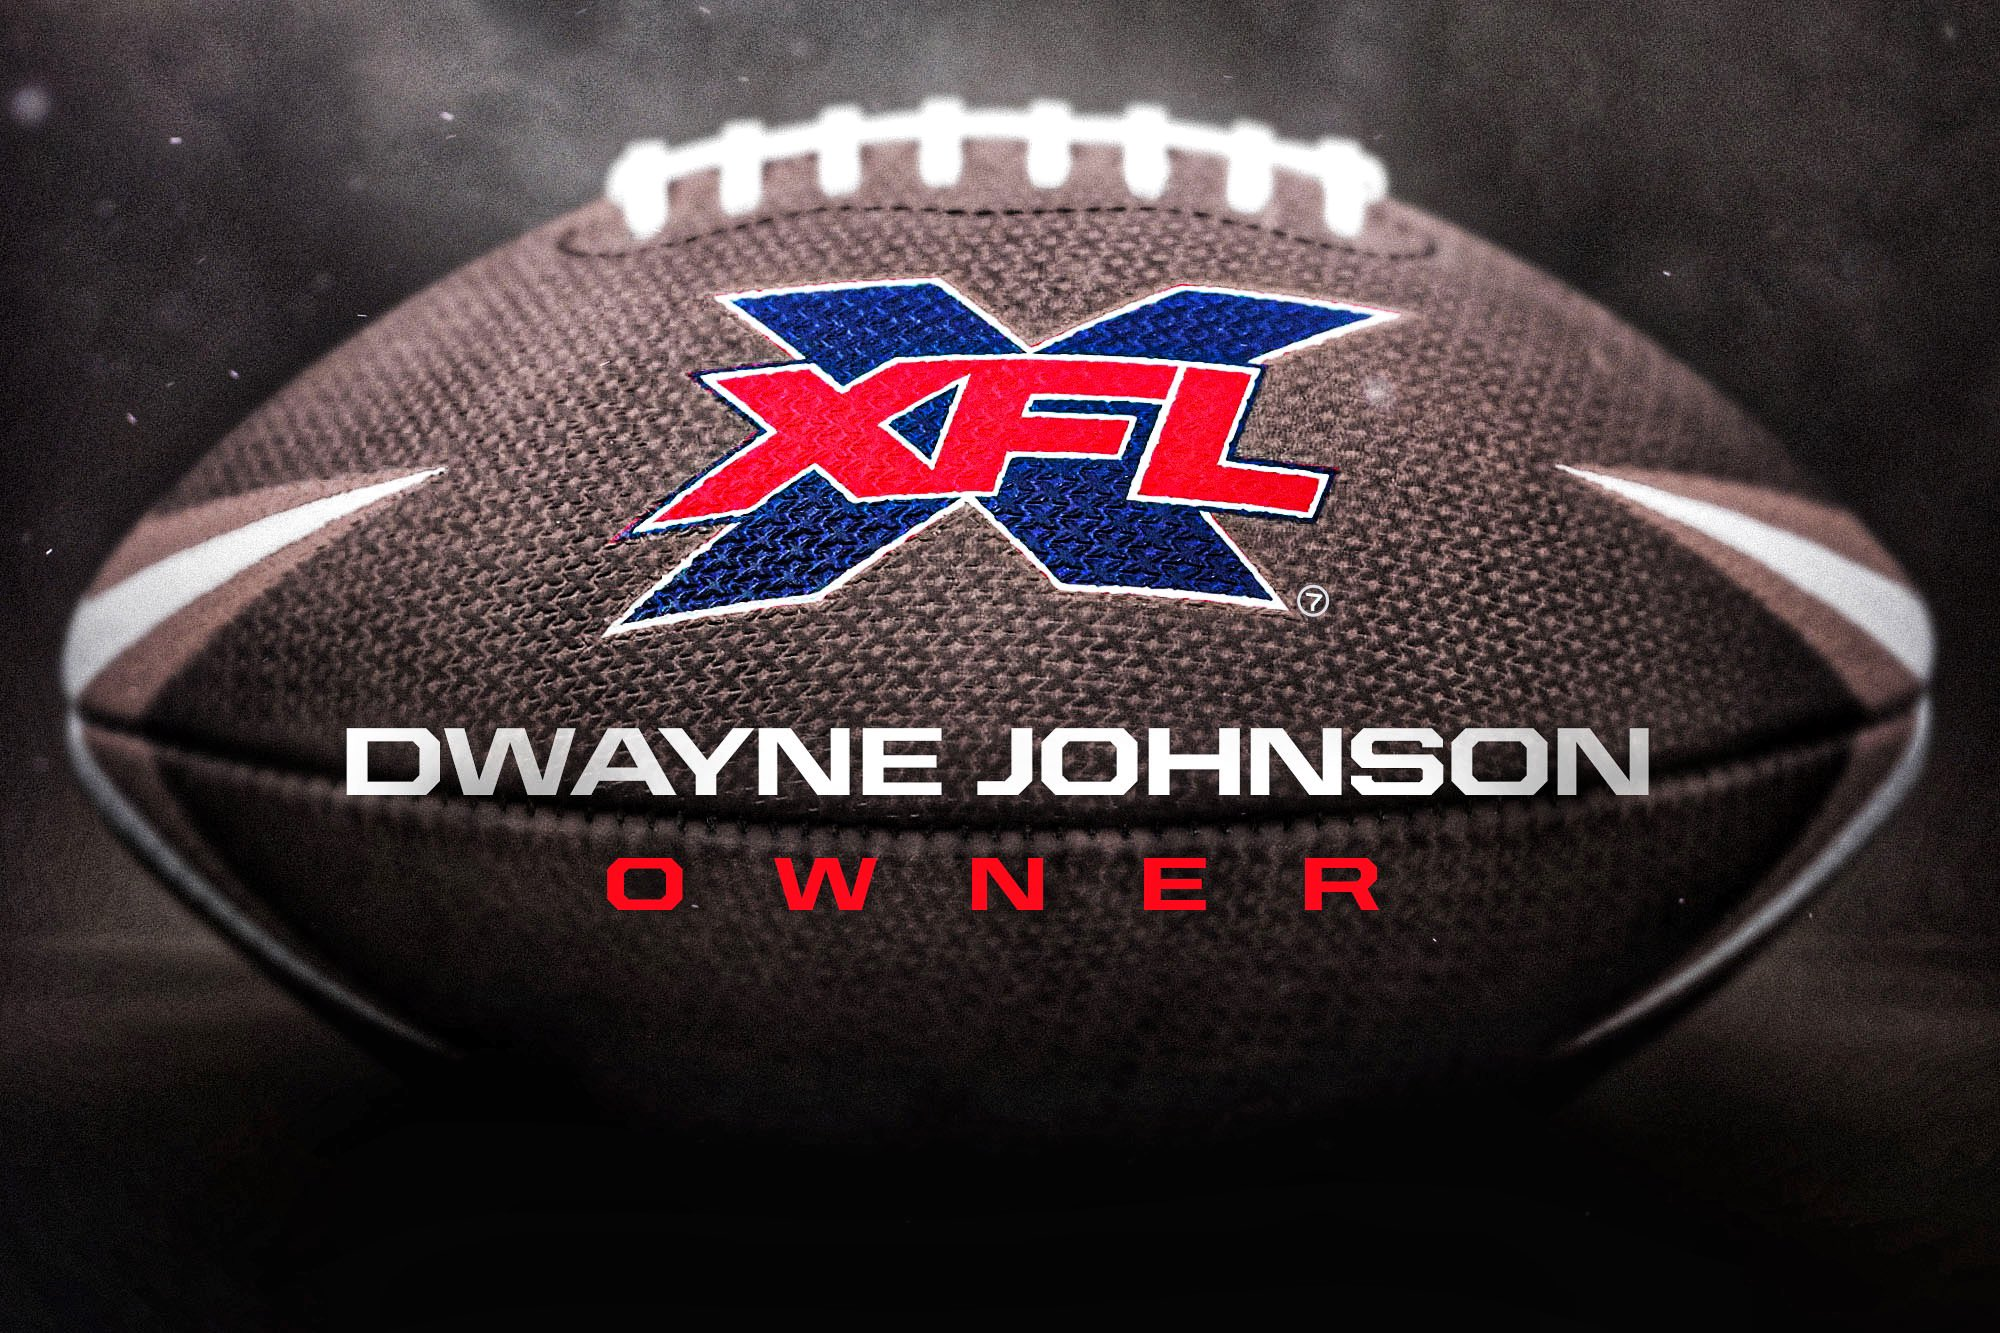 The Rock - Yes, That Rock - is Buying the XFL